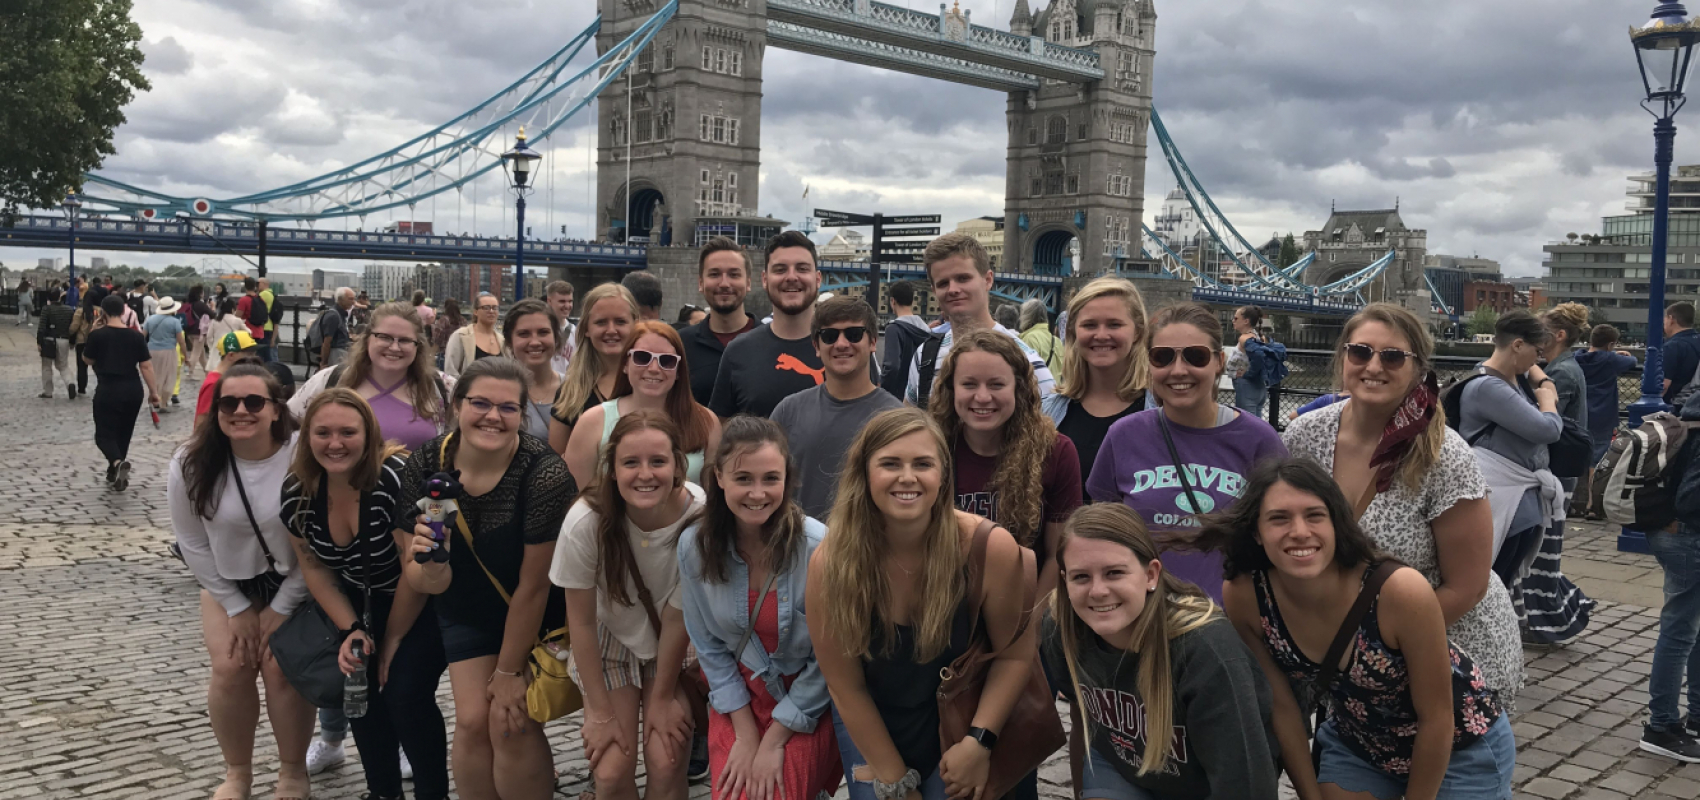 Group photo of summer 2019 students with tower bridge in background